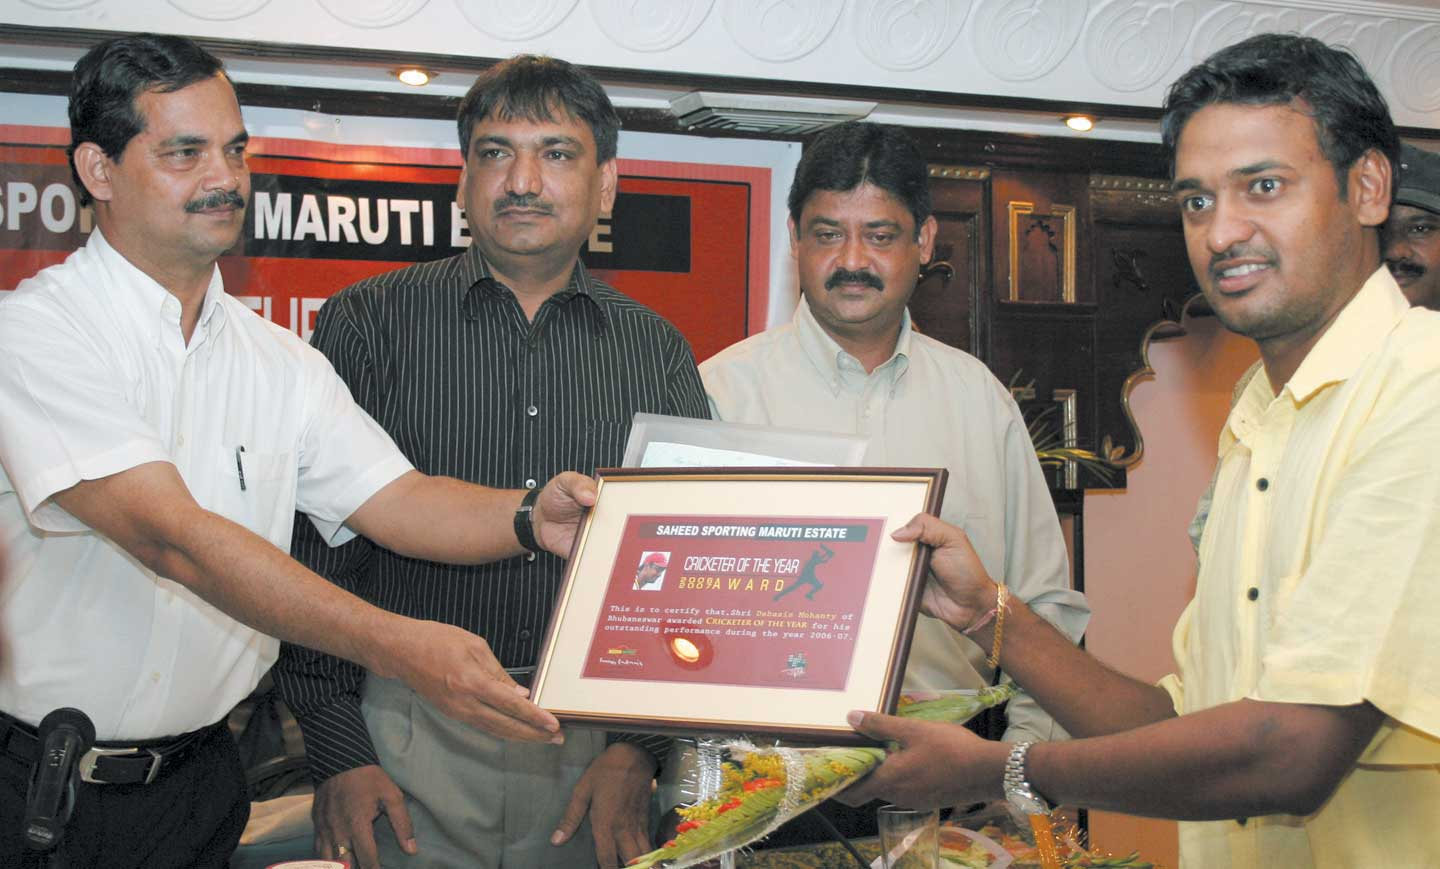 World Cupper Debasis Mohanty (Right) receives the Maruti Estate Saheed Sporting Cricketer of the Year Award in Bhubaneswar on April 16, 2008.